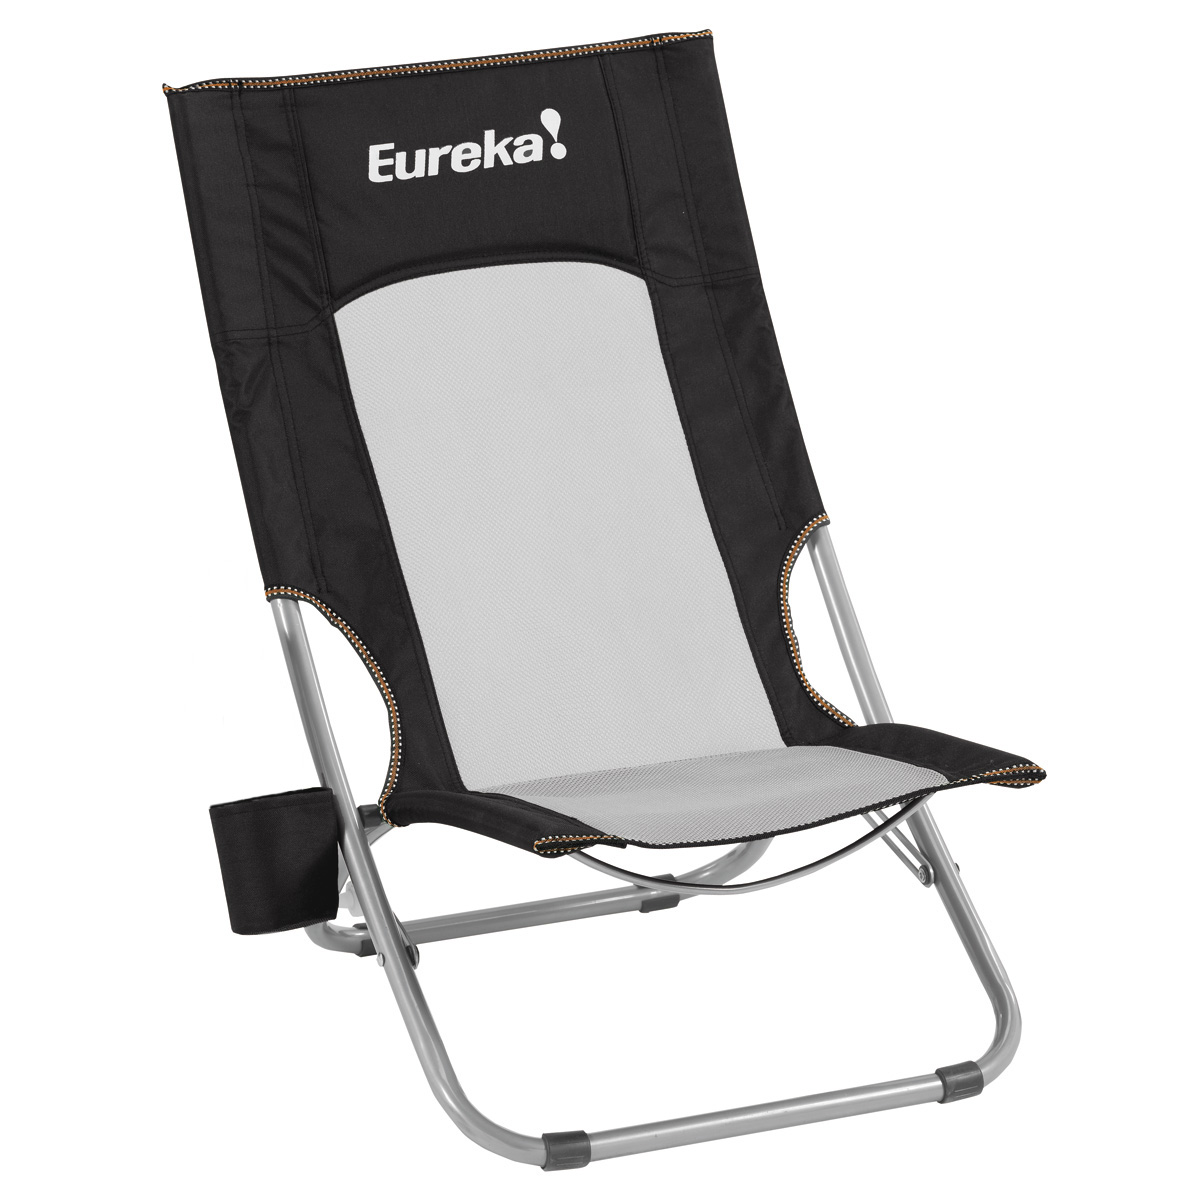 Campelona Camp Chair